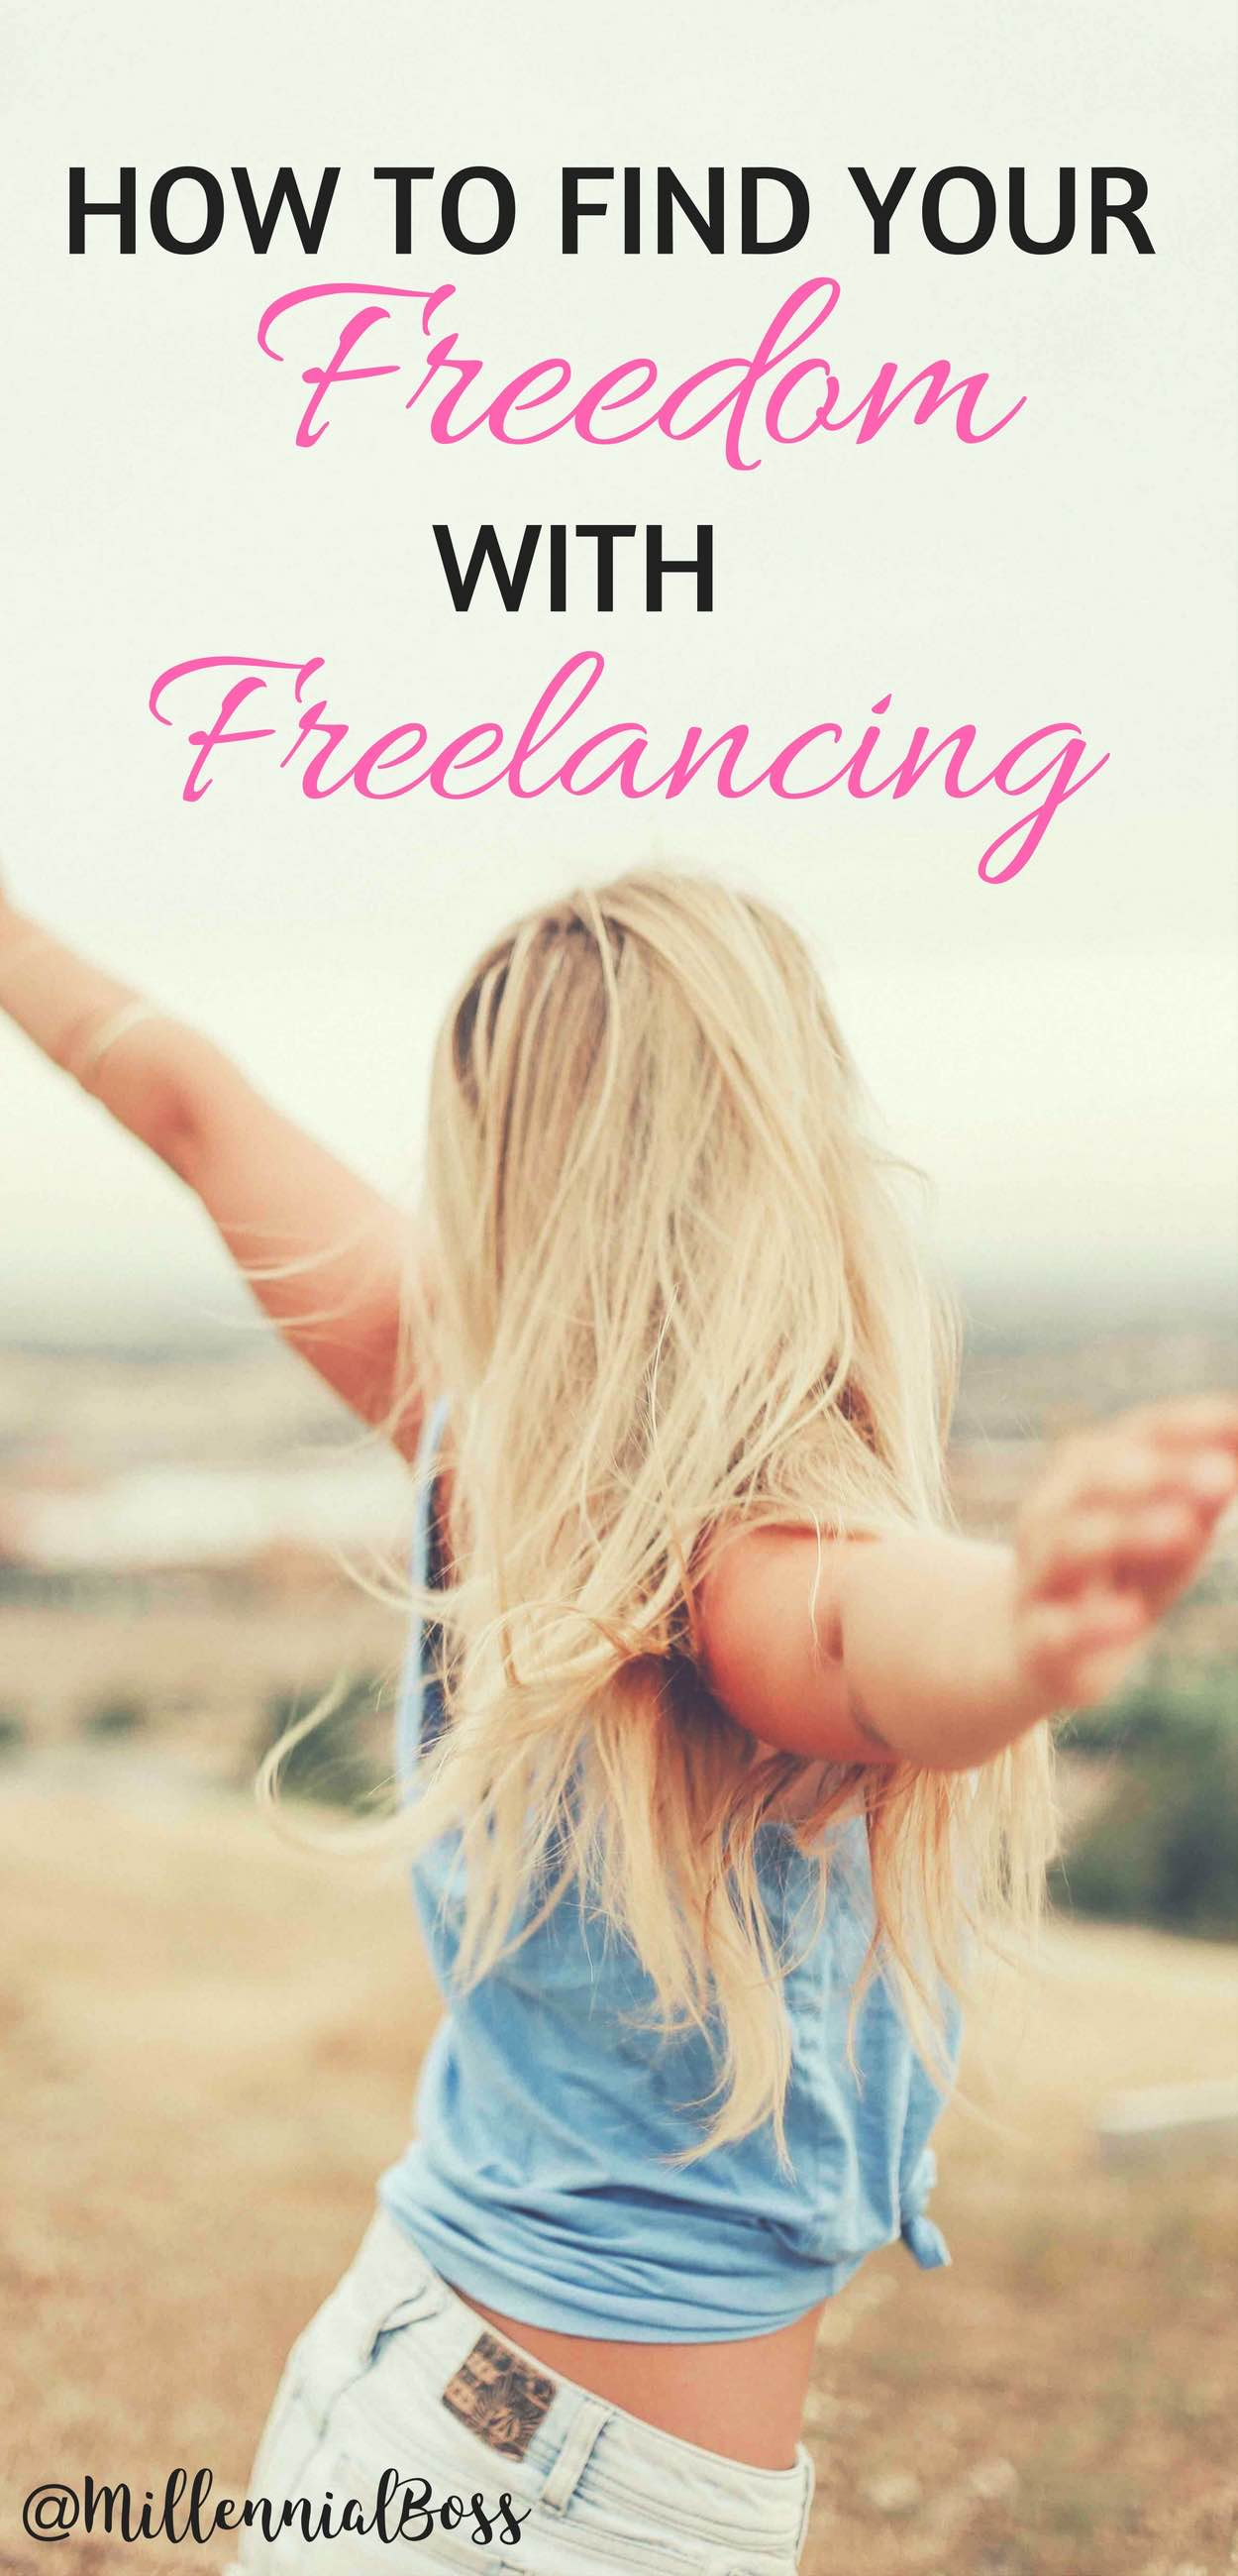 How to find freelance jobs   Hear from Kim who runs her own digital marketing consulting company